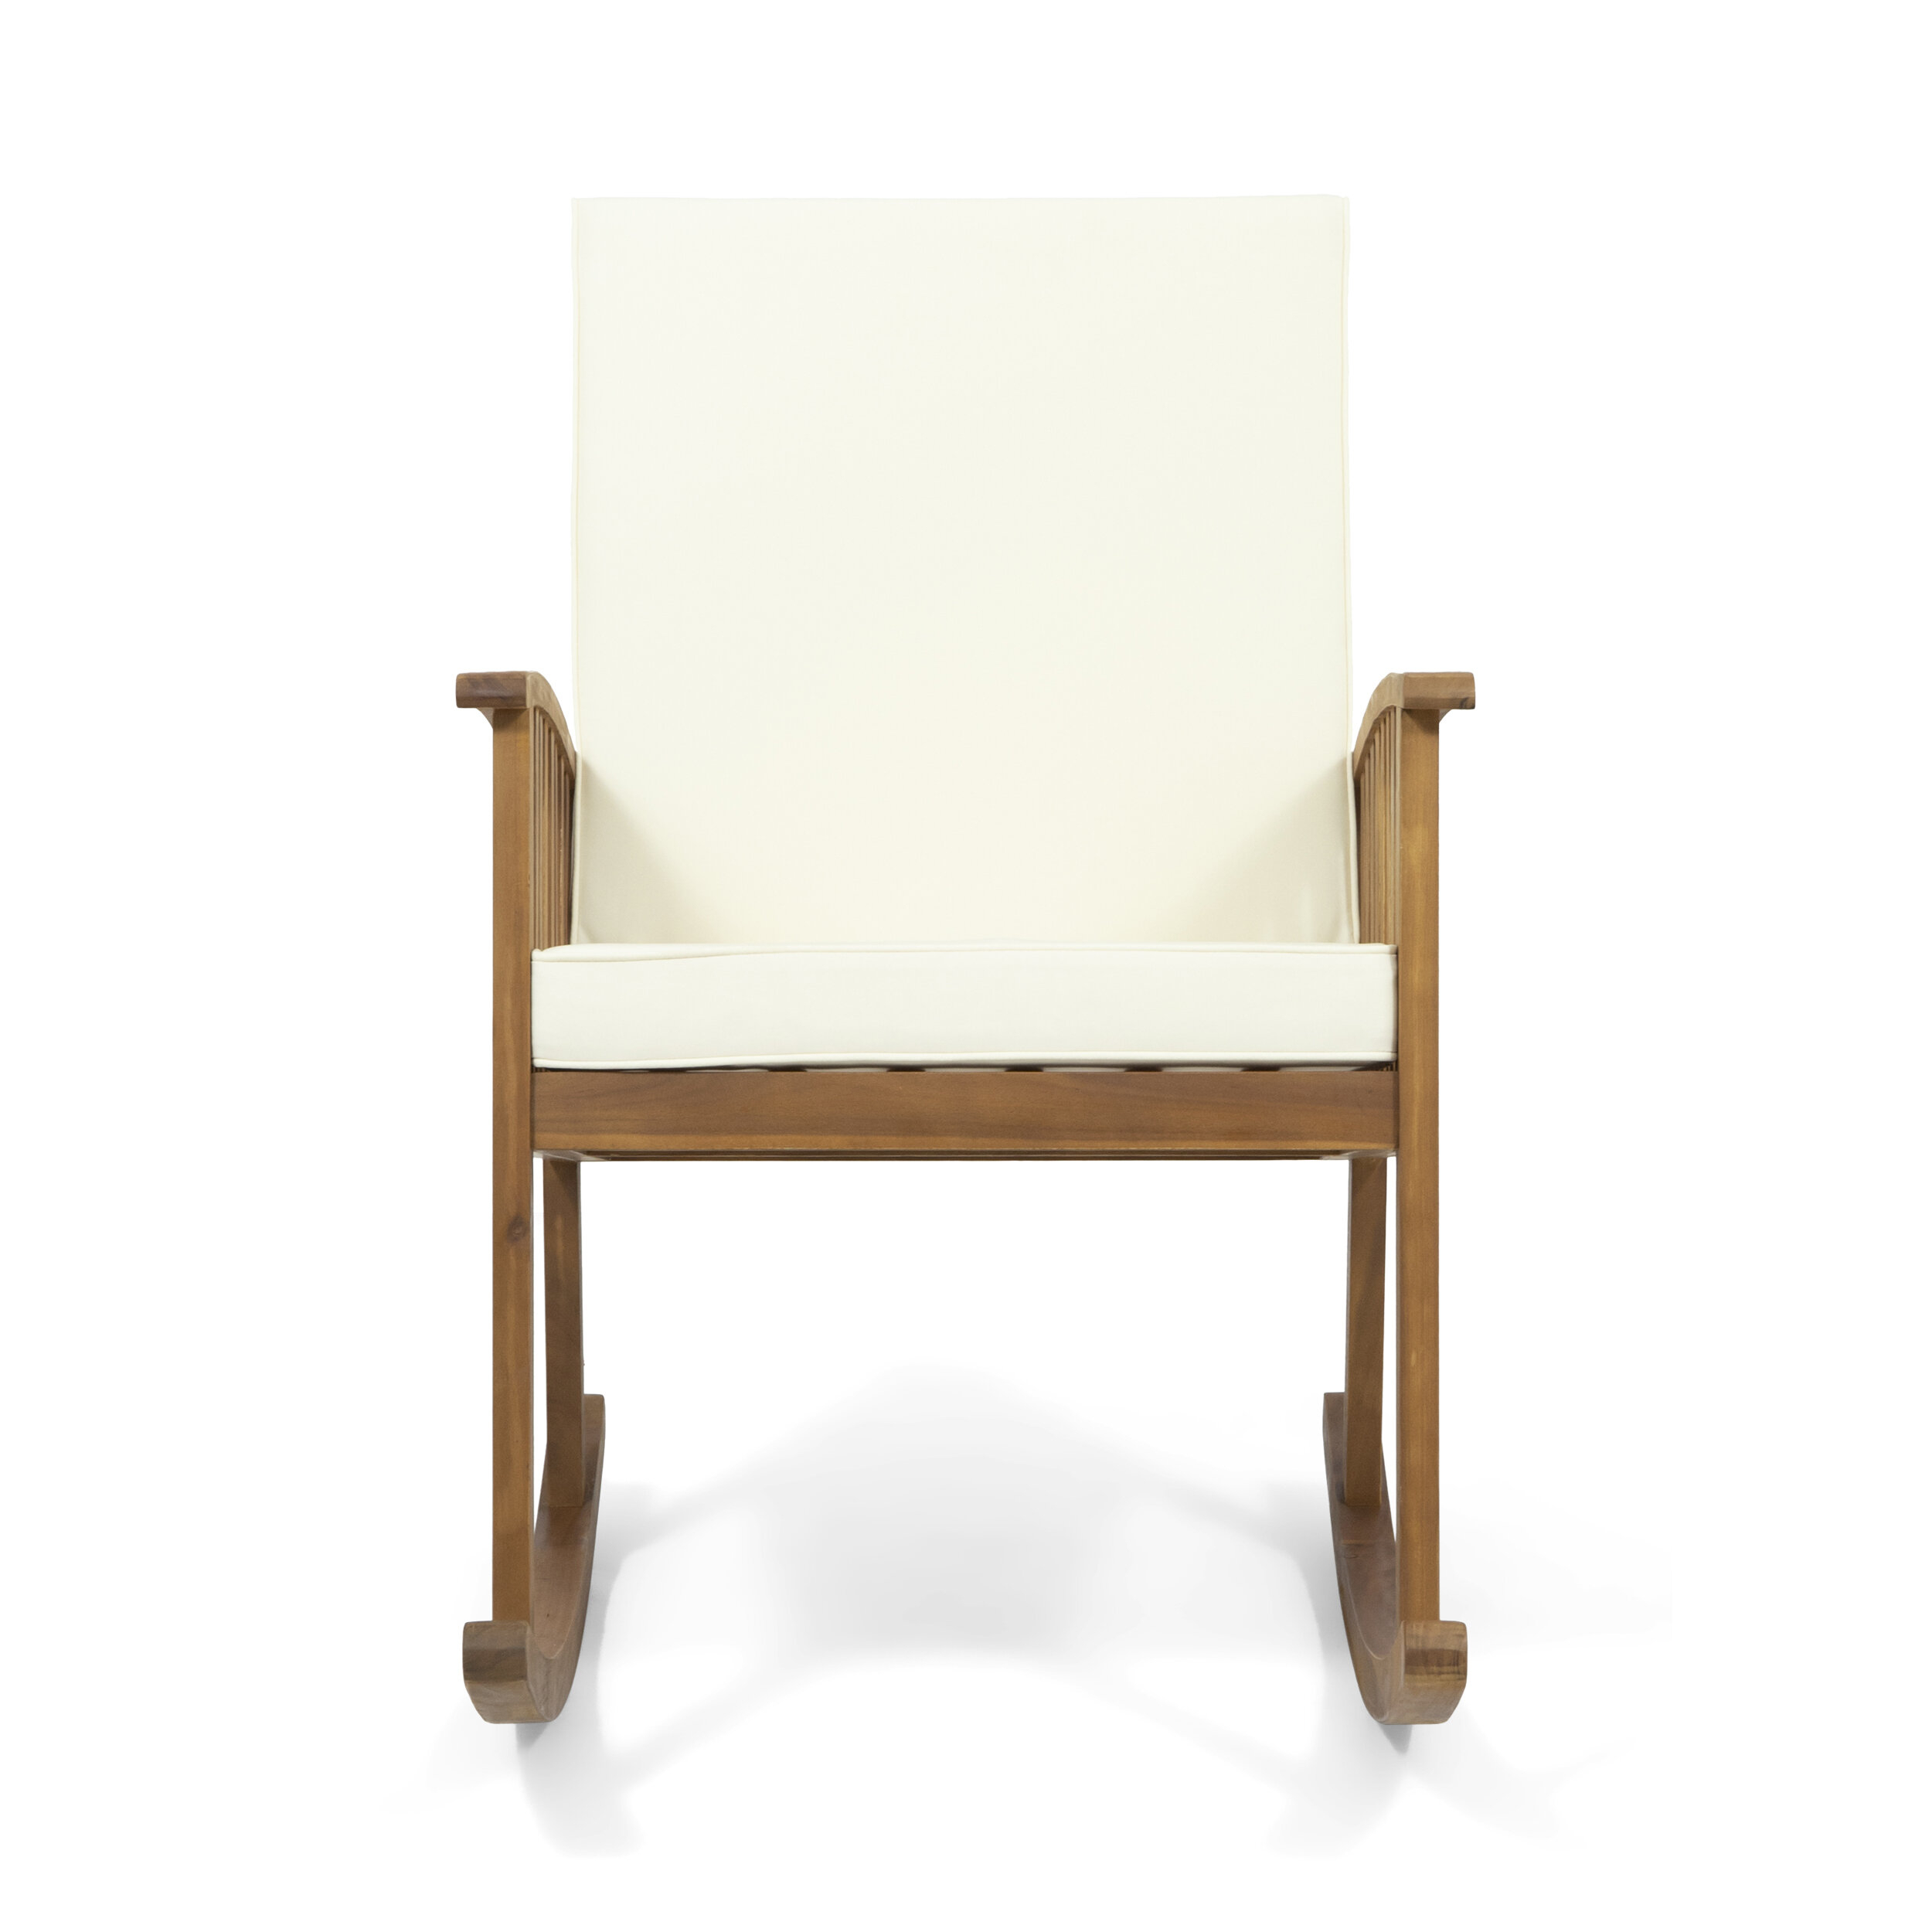 Stamm Rocking Chair With Cushions Inside Traditional Indoor Acacia Wood Rocking Chairs With Cushions (#19 of 20)